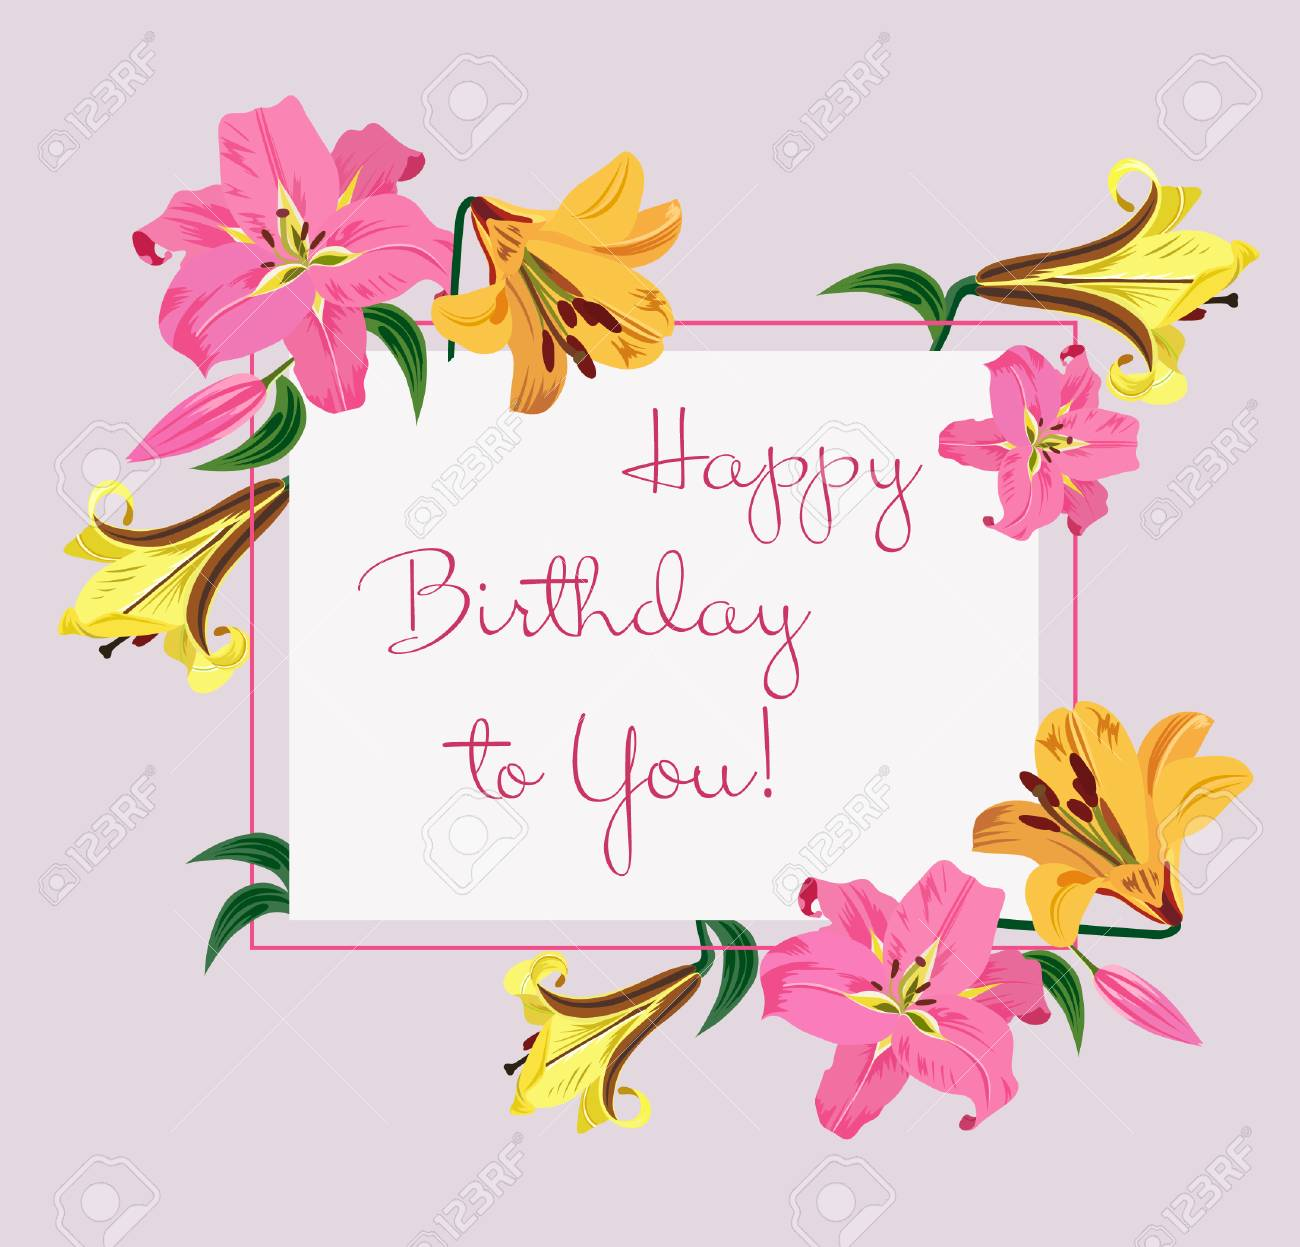 Happy Birthday Greeting Card With Colorful Lilies Flowers Vector